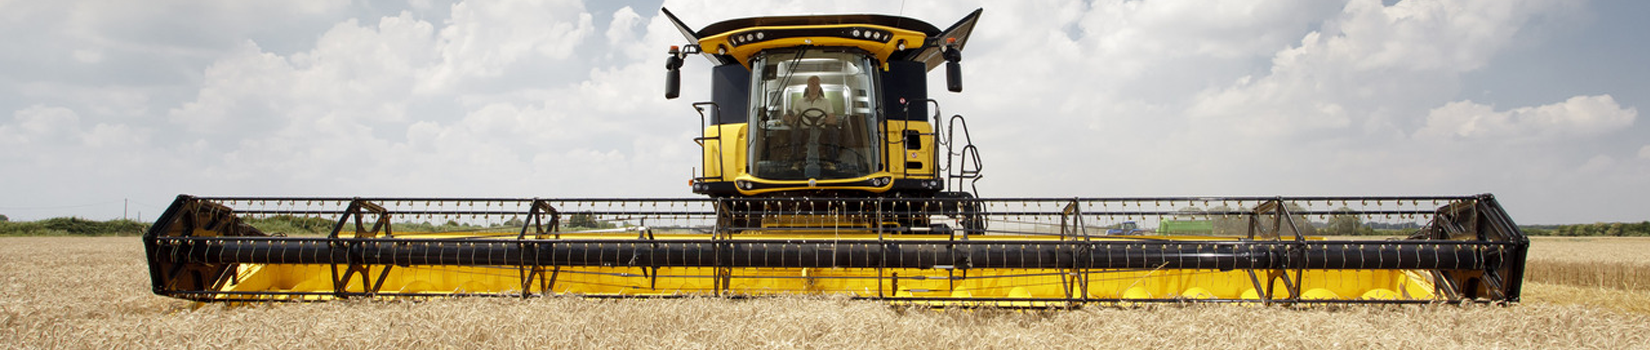 Kombainas New Holland CR Revelation